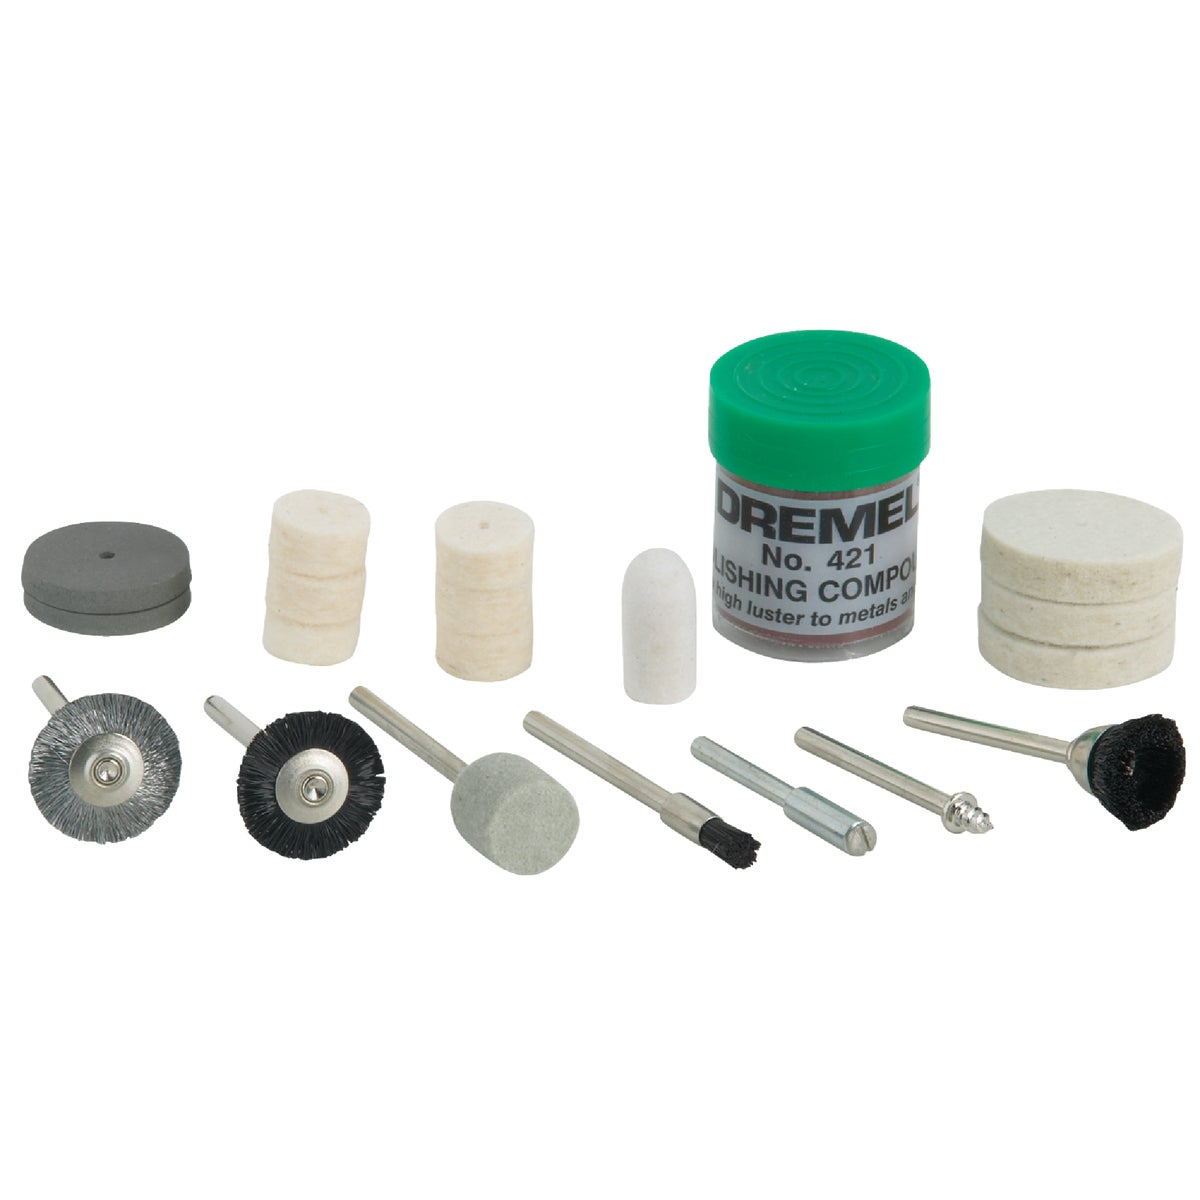 POLISHING BIT SET - 684-01 by Dremel Mfg Co